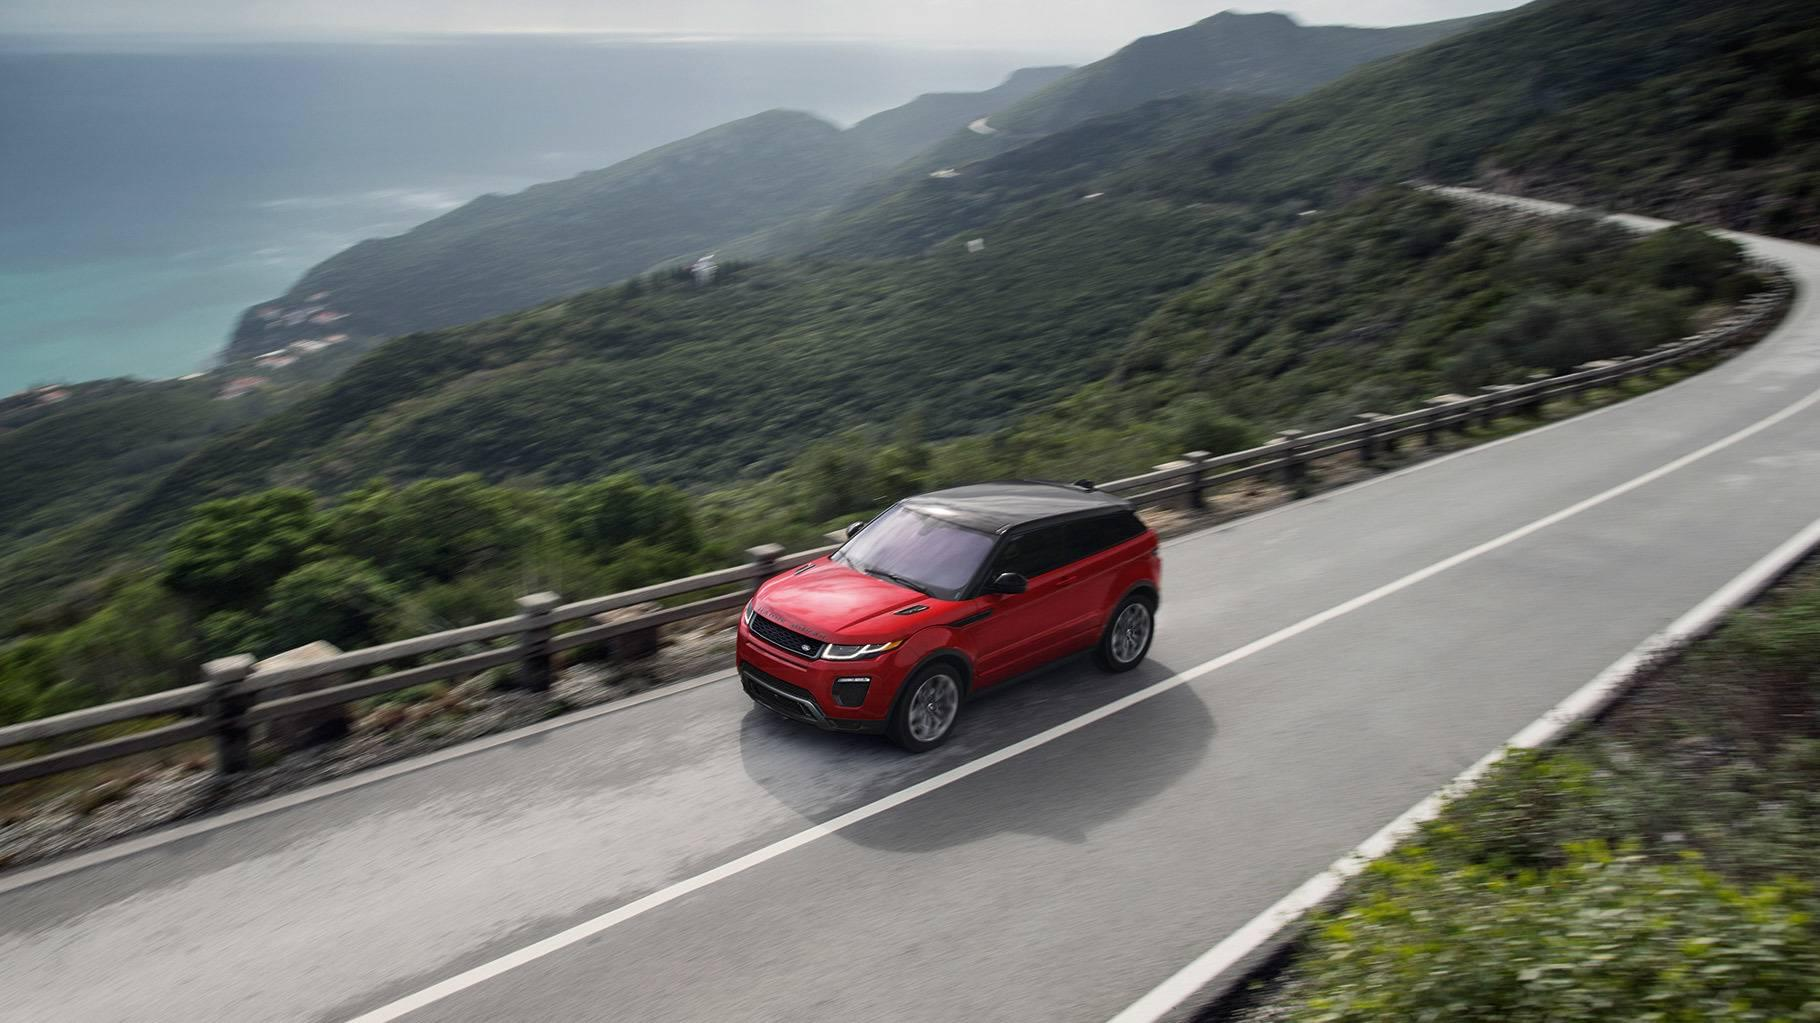 2017 Land Rover Range Rover Evoque Exterior red exterior model